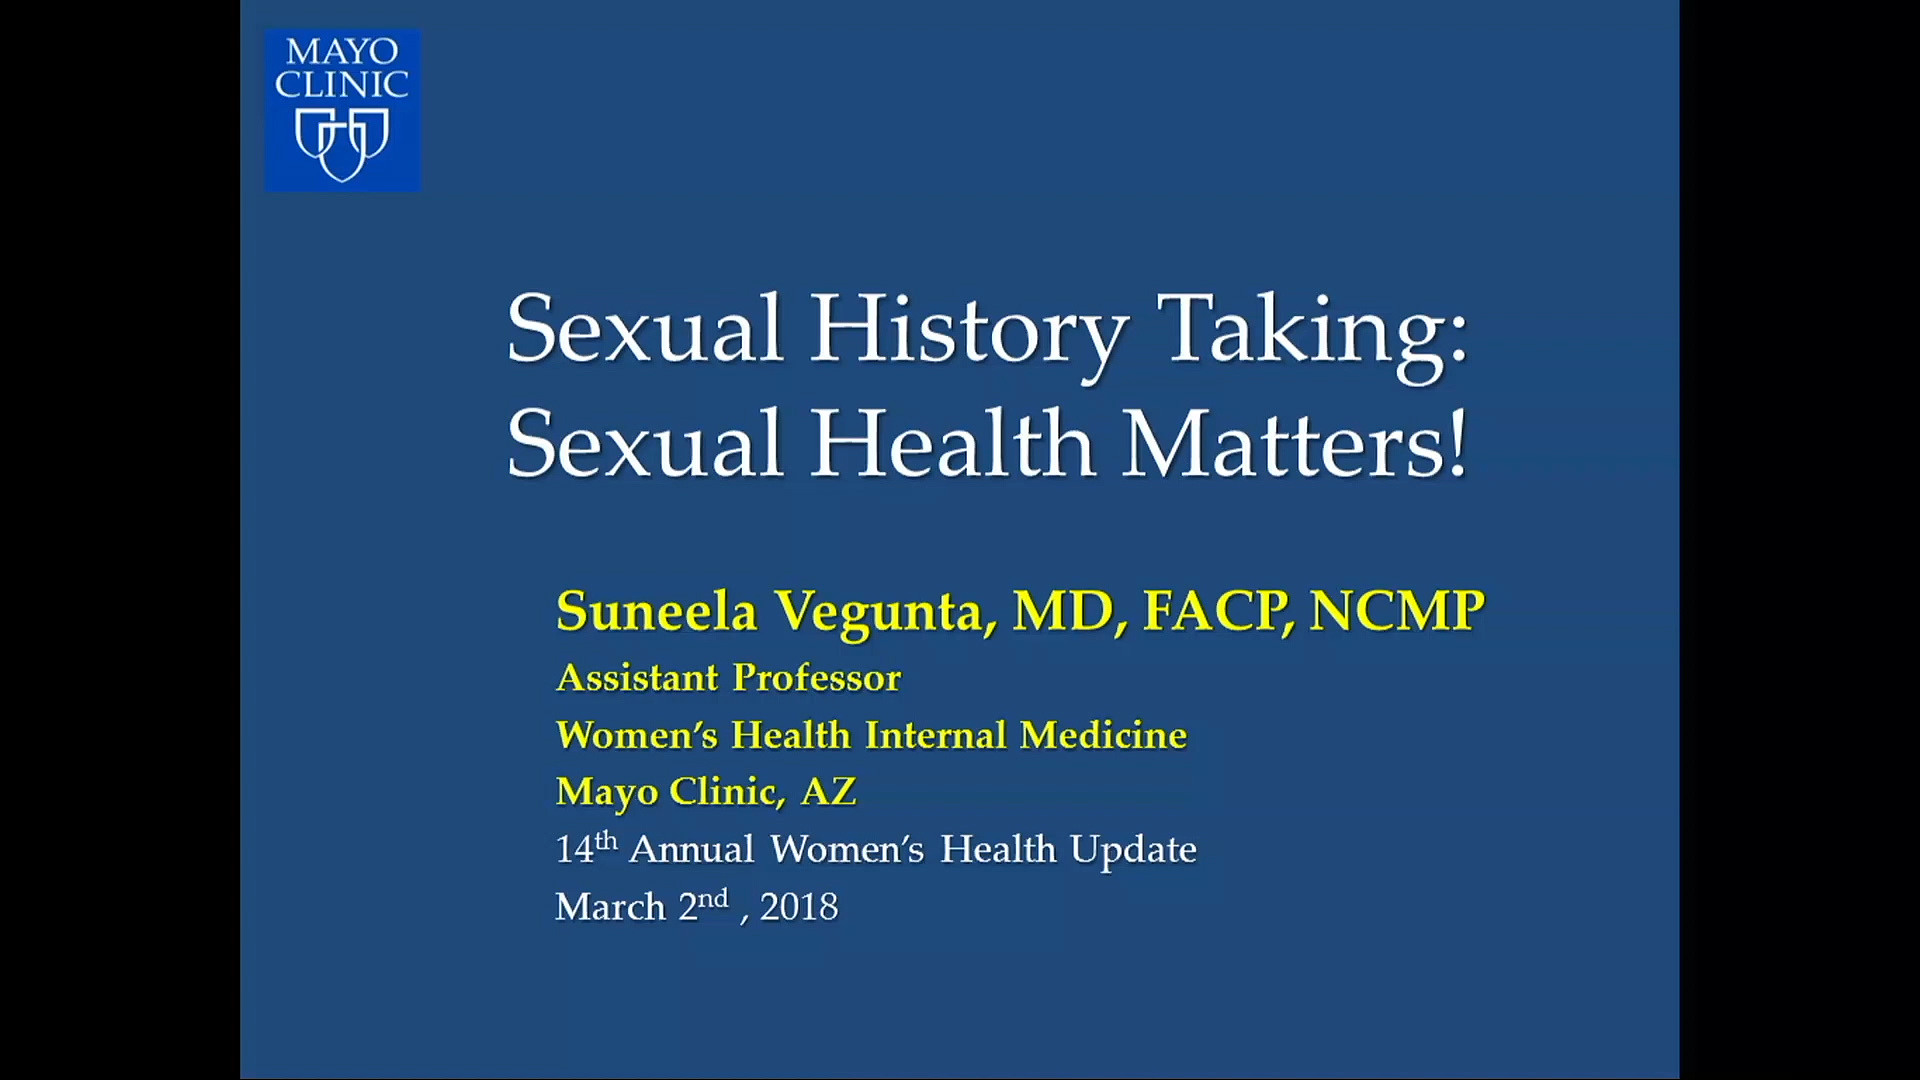 Sexual History Taking: Sexual Health Matters! (Audio) by